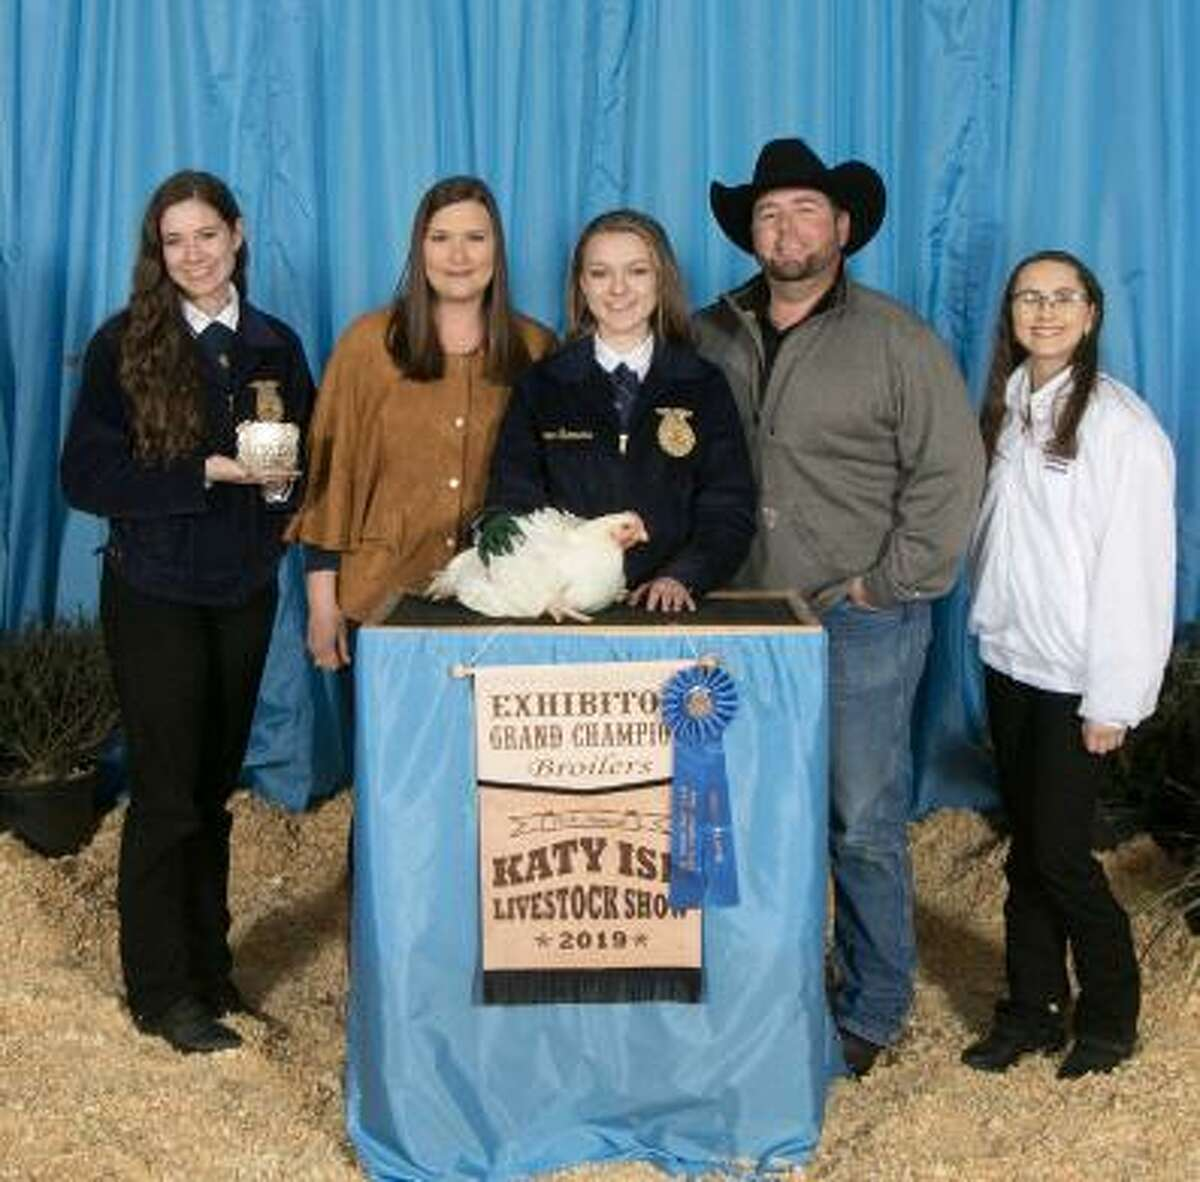 Lauren Summers raised the grand champion broilers which sold at the Katy ISD FFA Livestock auction for $7,000.